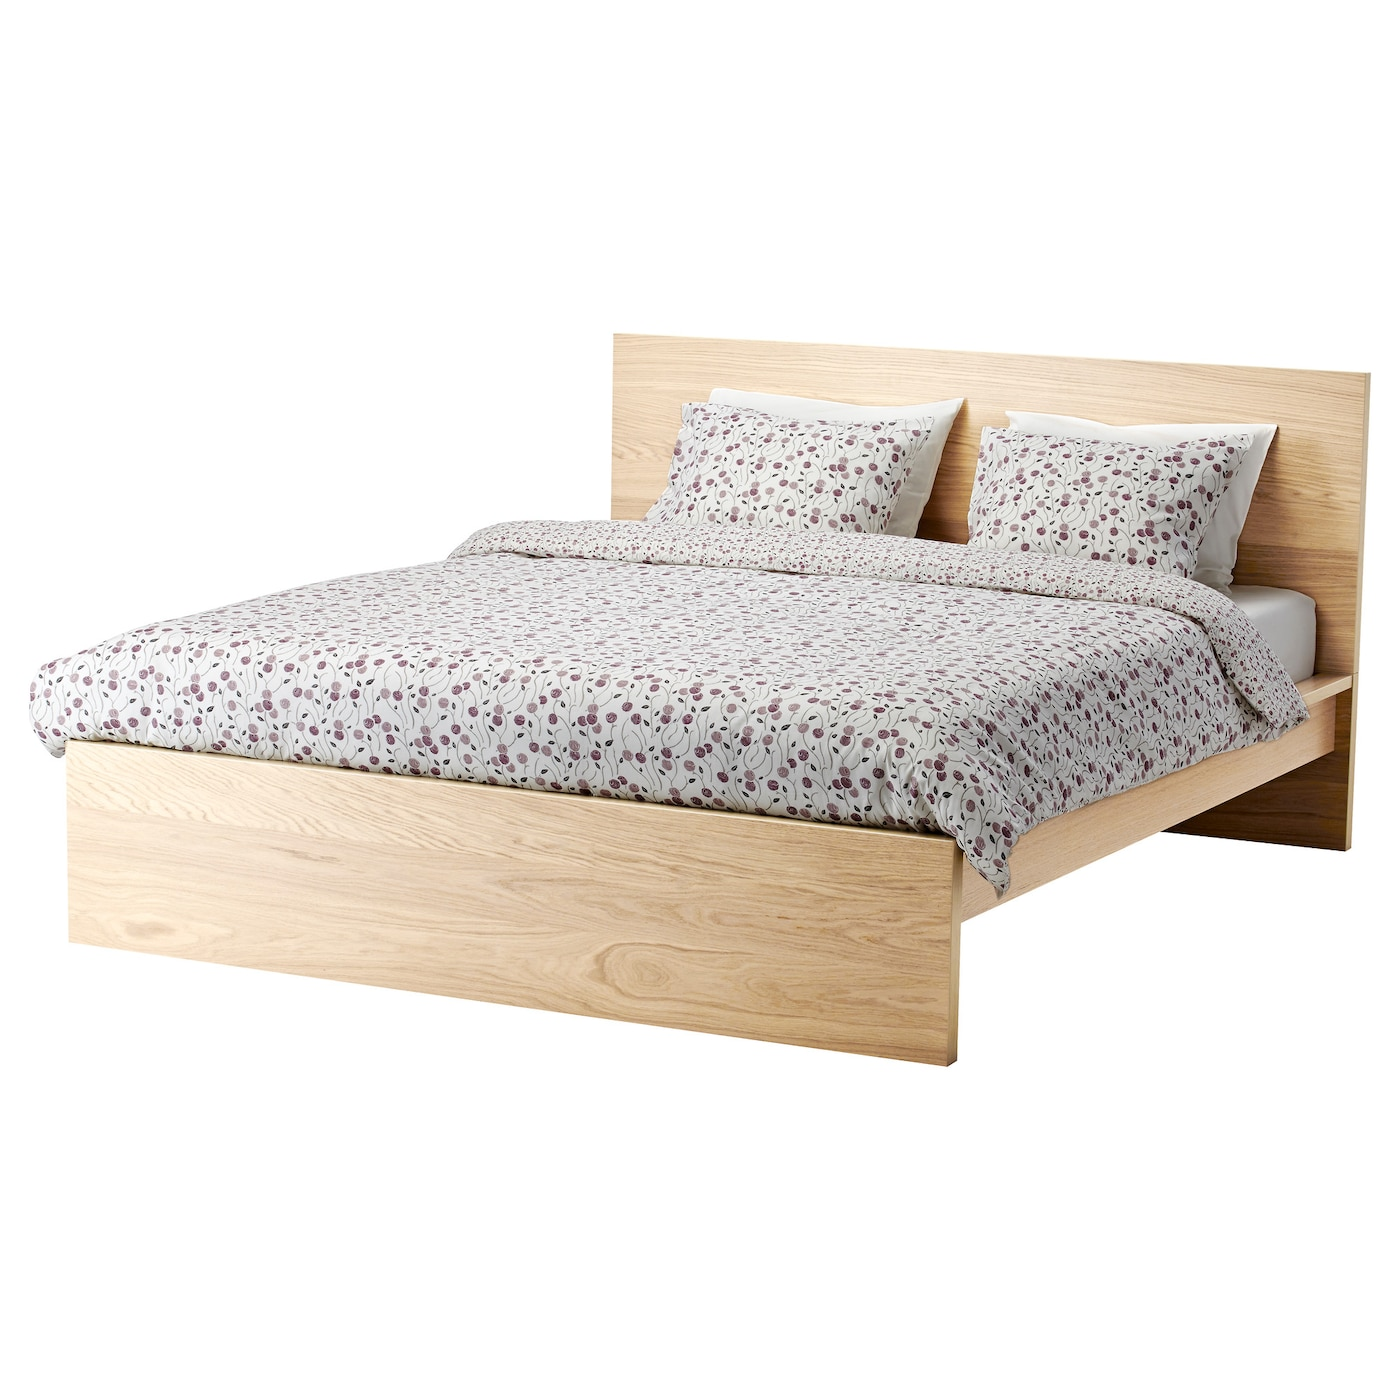 Beds bed frames ikea for Ikea malm bed low